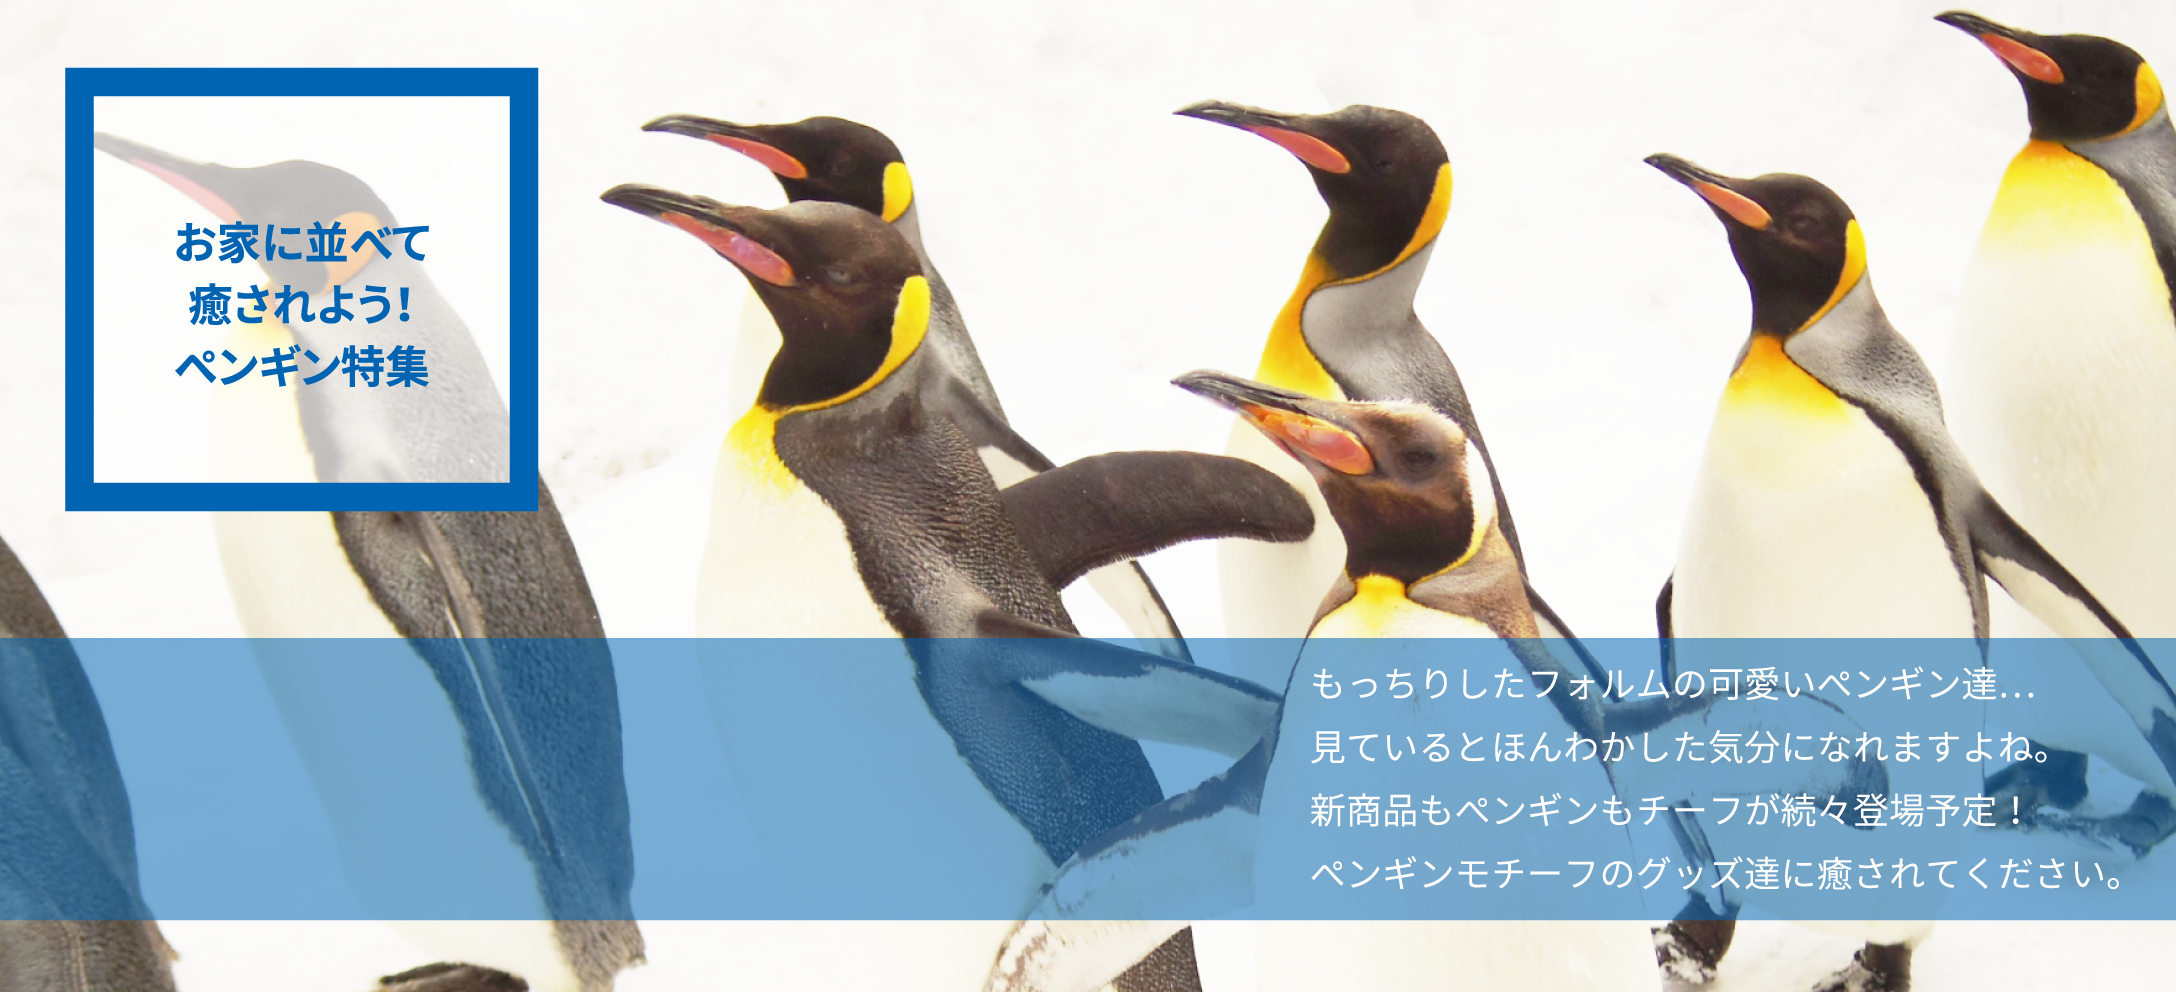 Let's be healed, Penguin feature